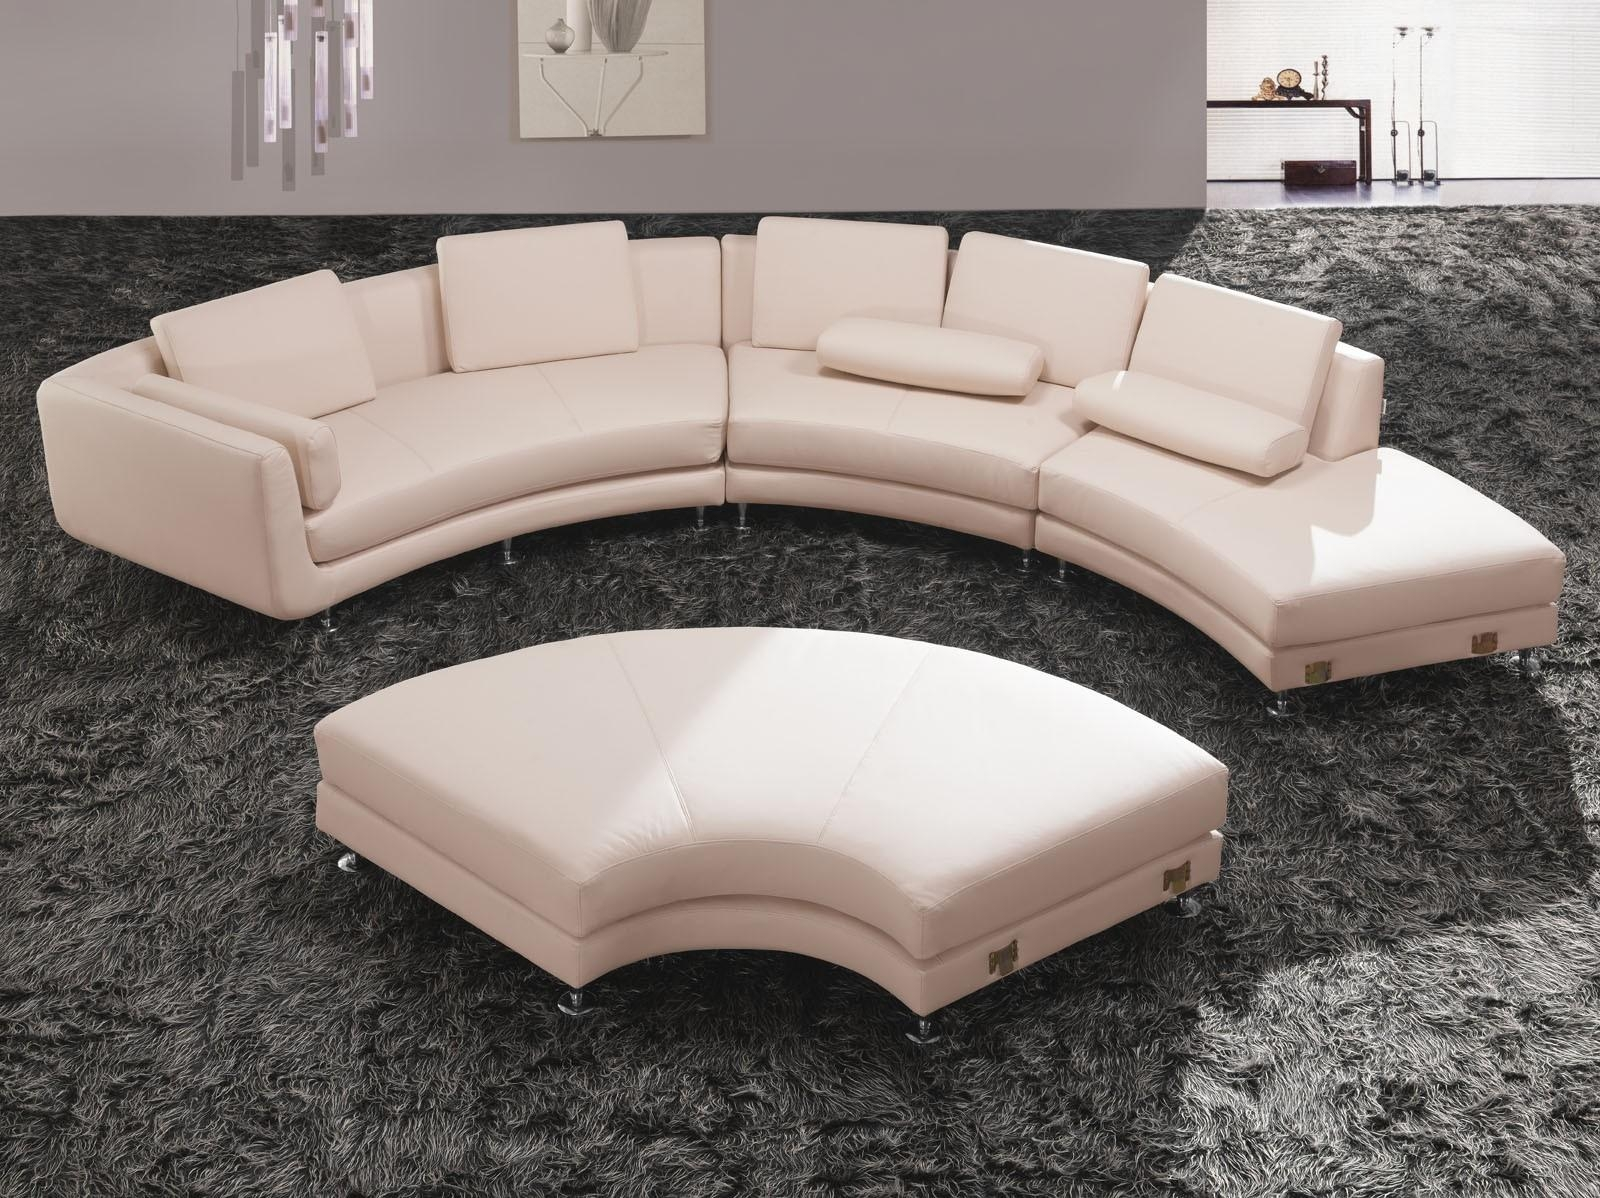 Circular Sectional Sofa Canada | Tehranmix Decoration Inside Round Sectional Sofa Bed (View 5 of 20)